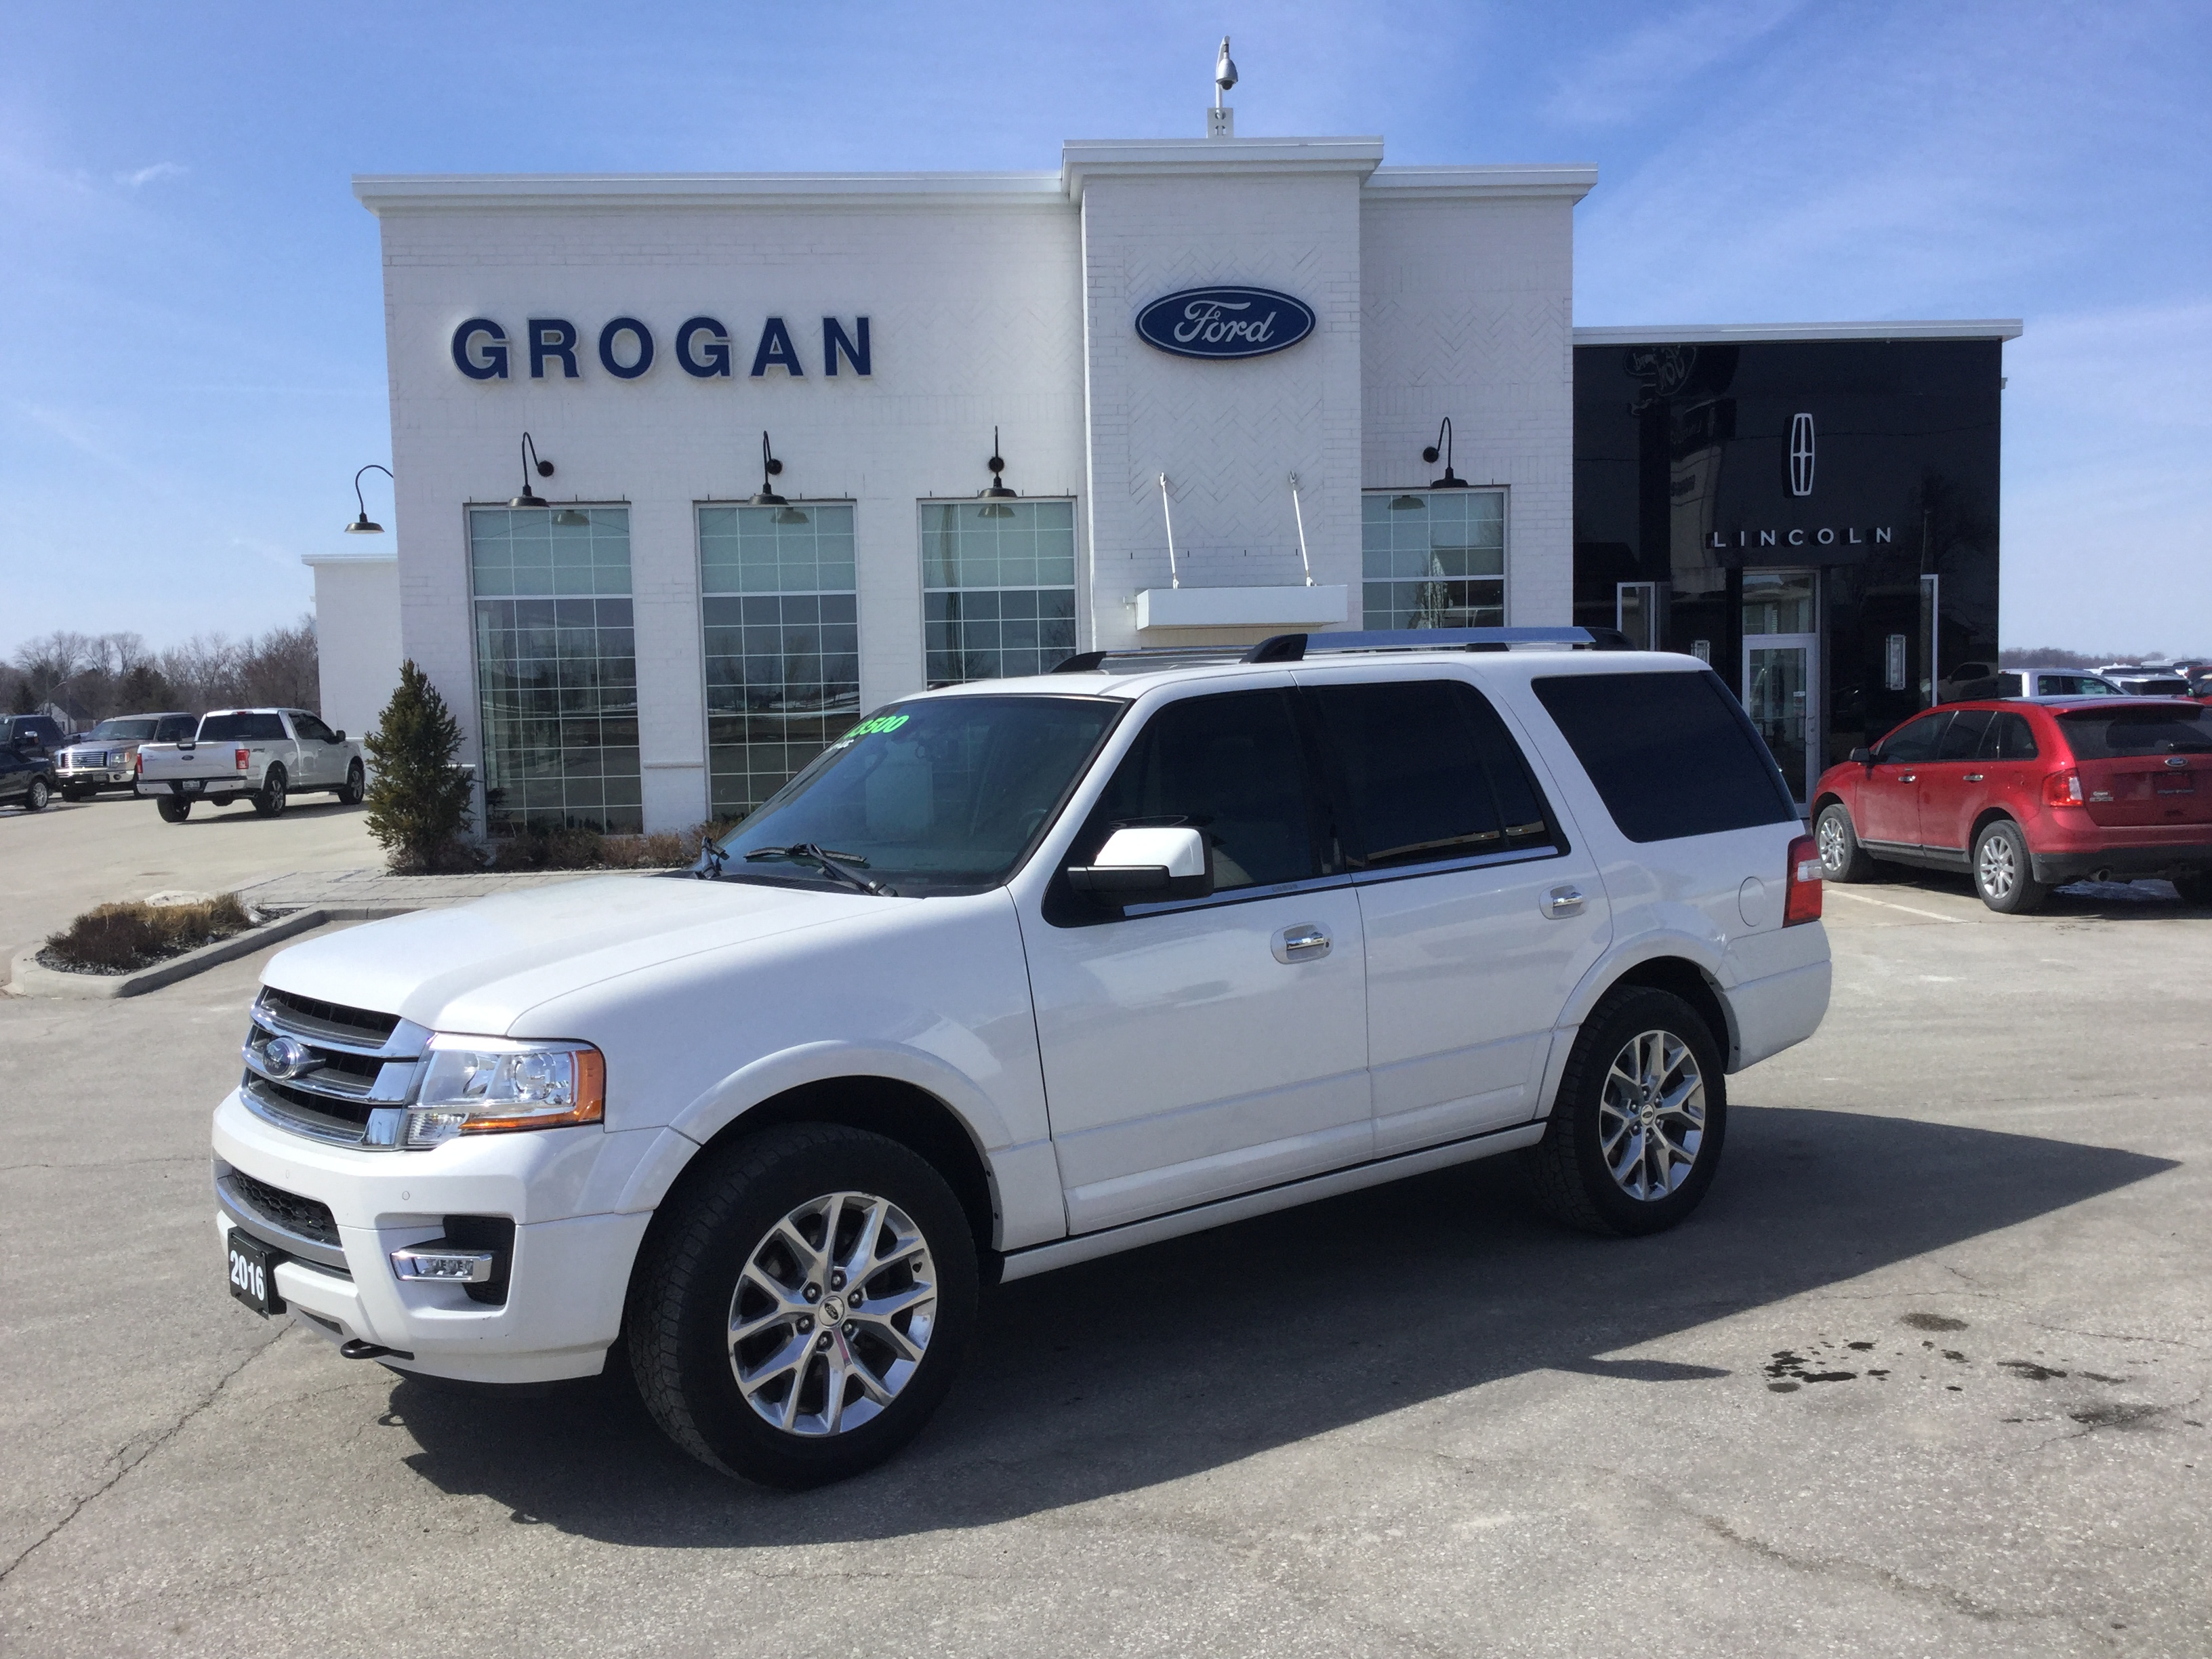 ford used c eddie bauer near expedition stock htm duluth sale for